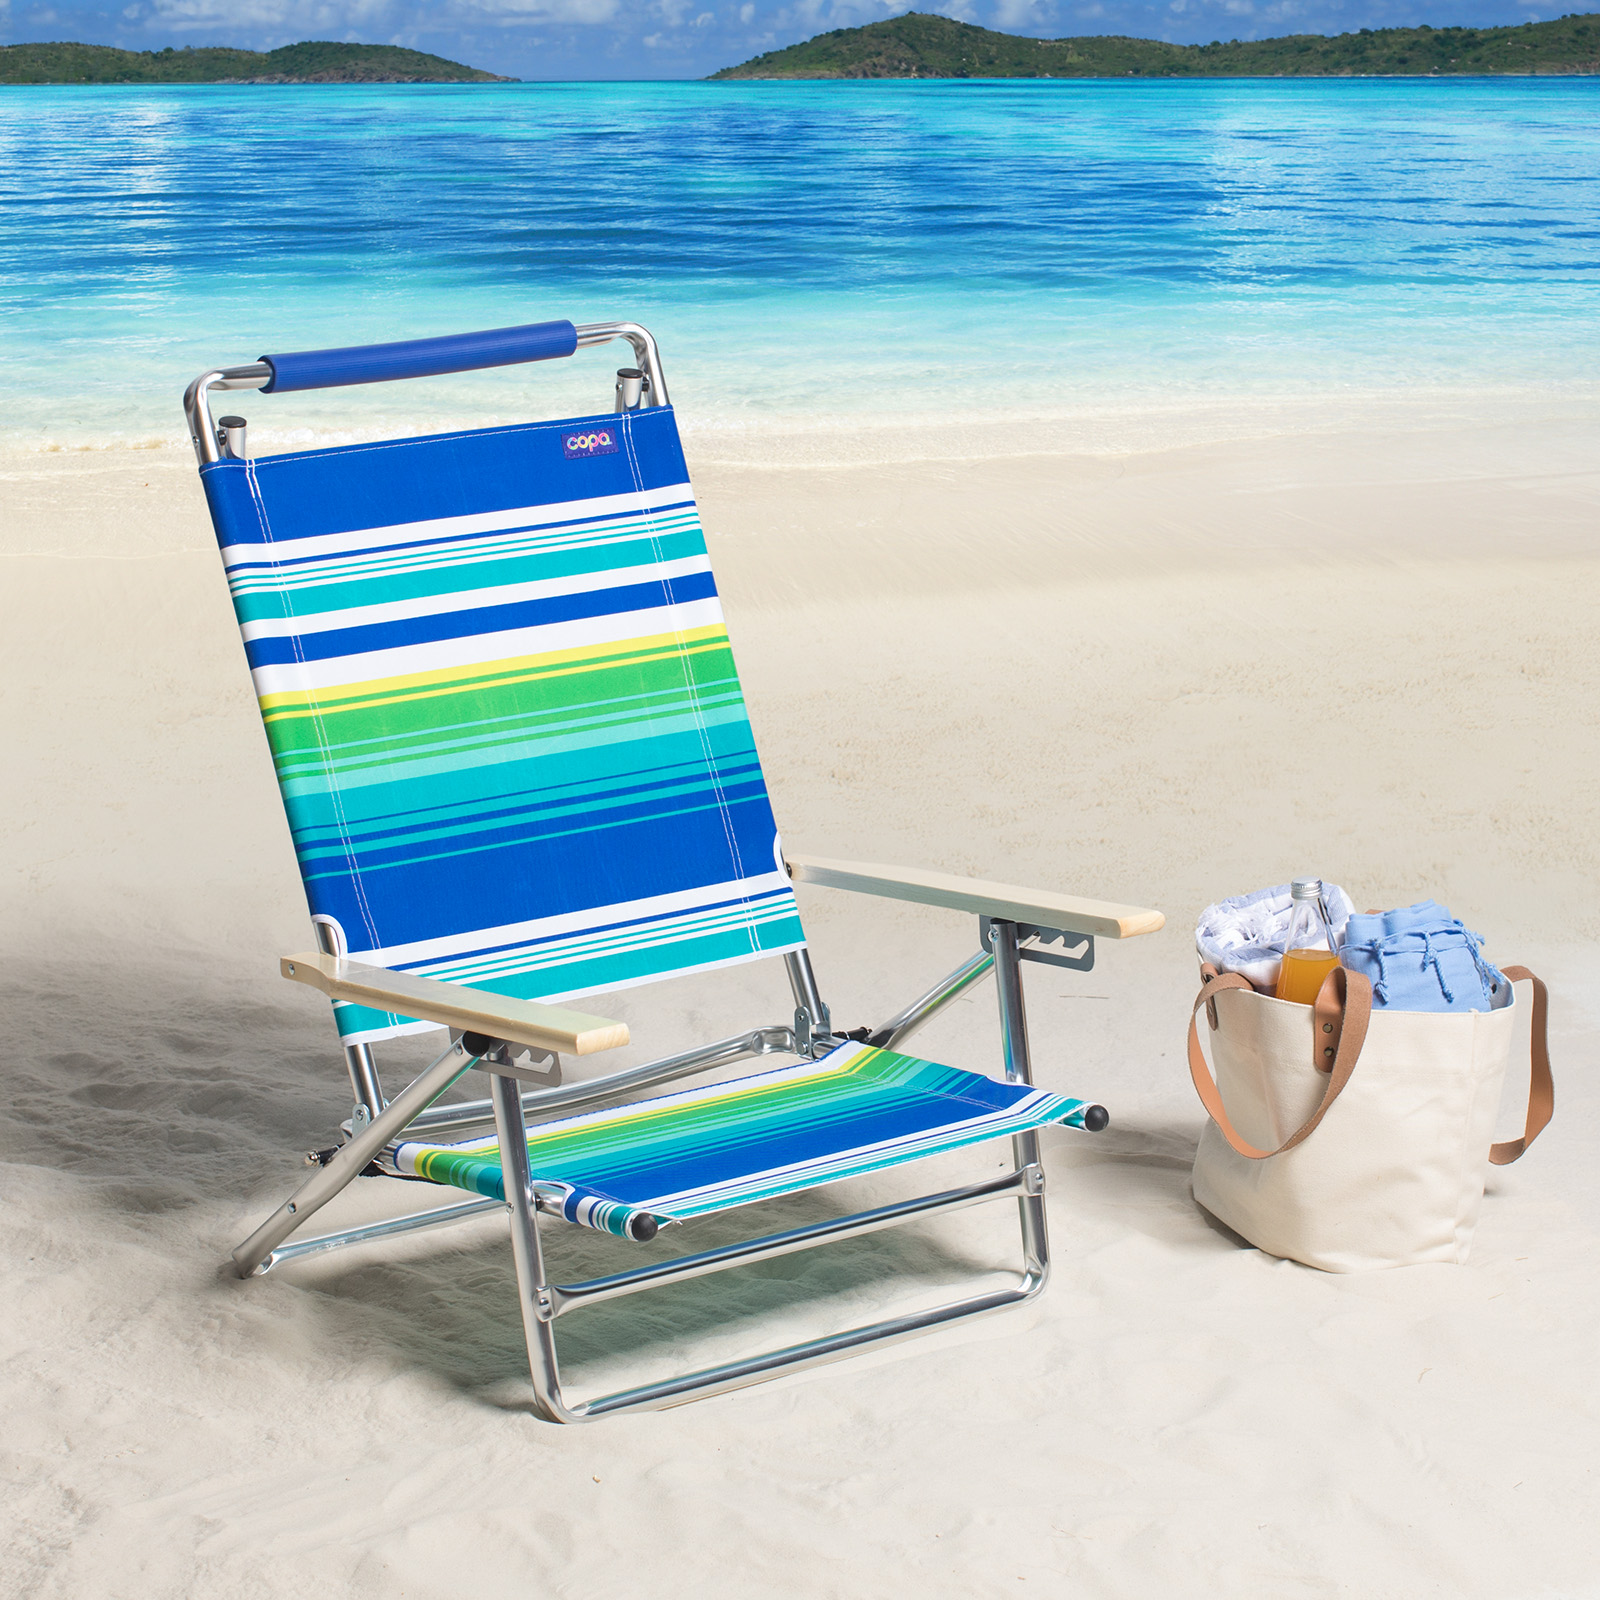 Beach Lounger Chair Copa 5 Position Lay Flat Aluminum Beach Chair Striped At